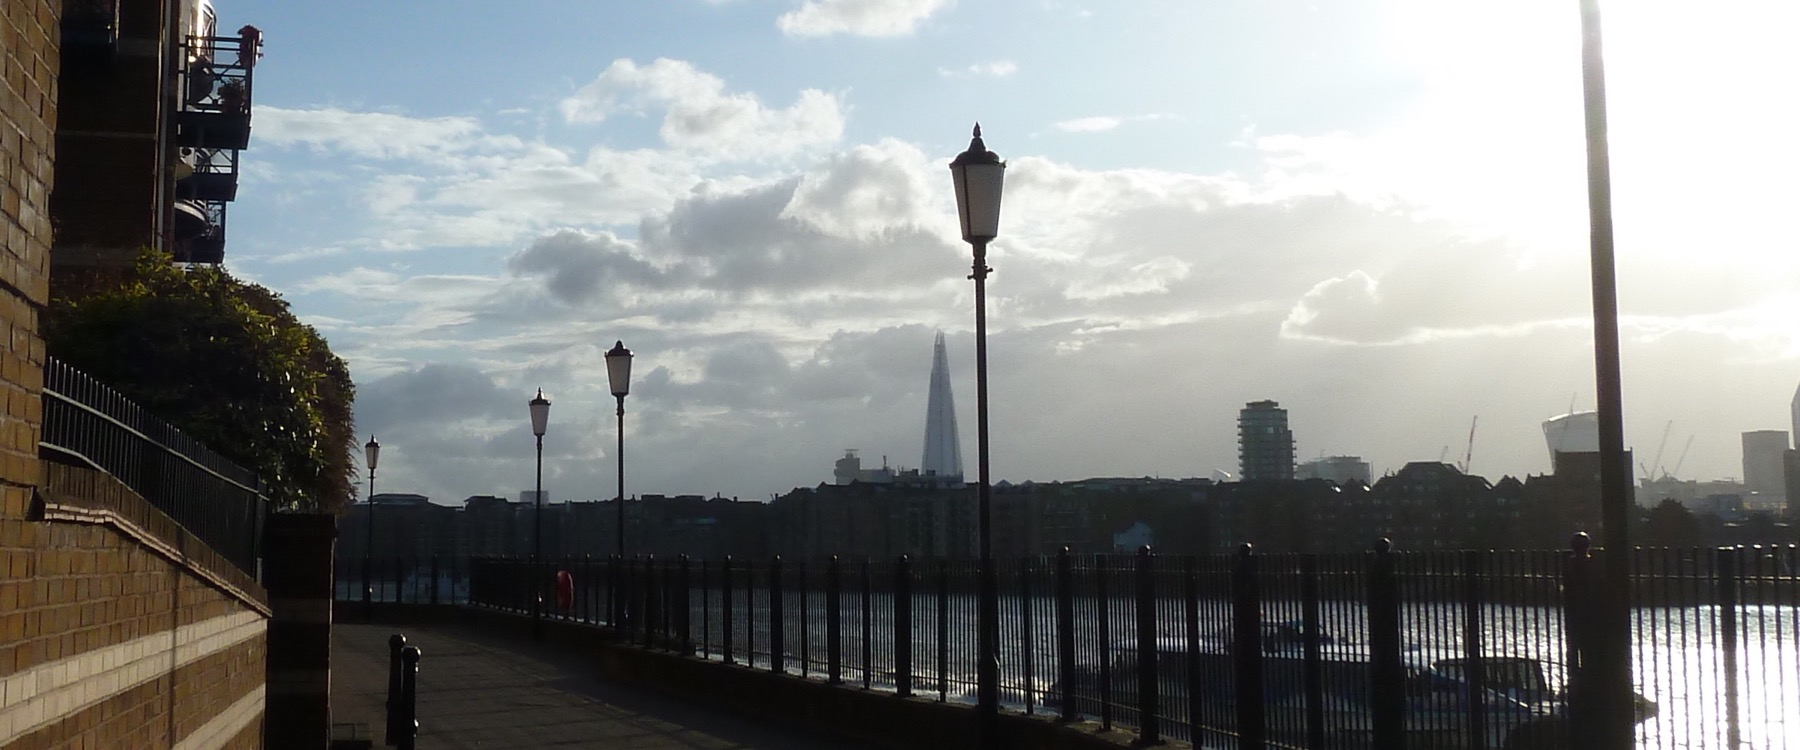 River view along the Thames, featuring the Shard